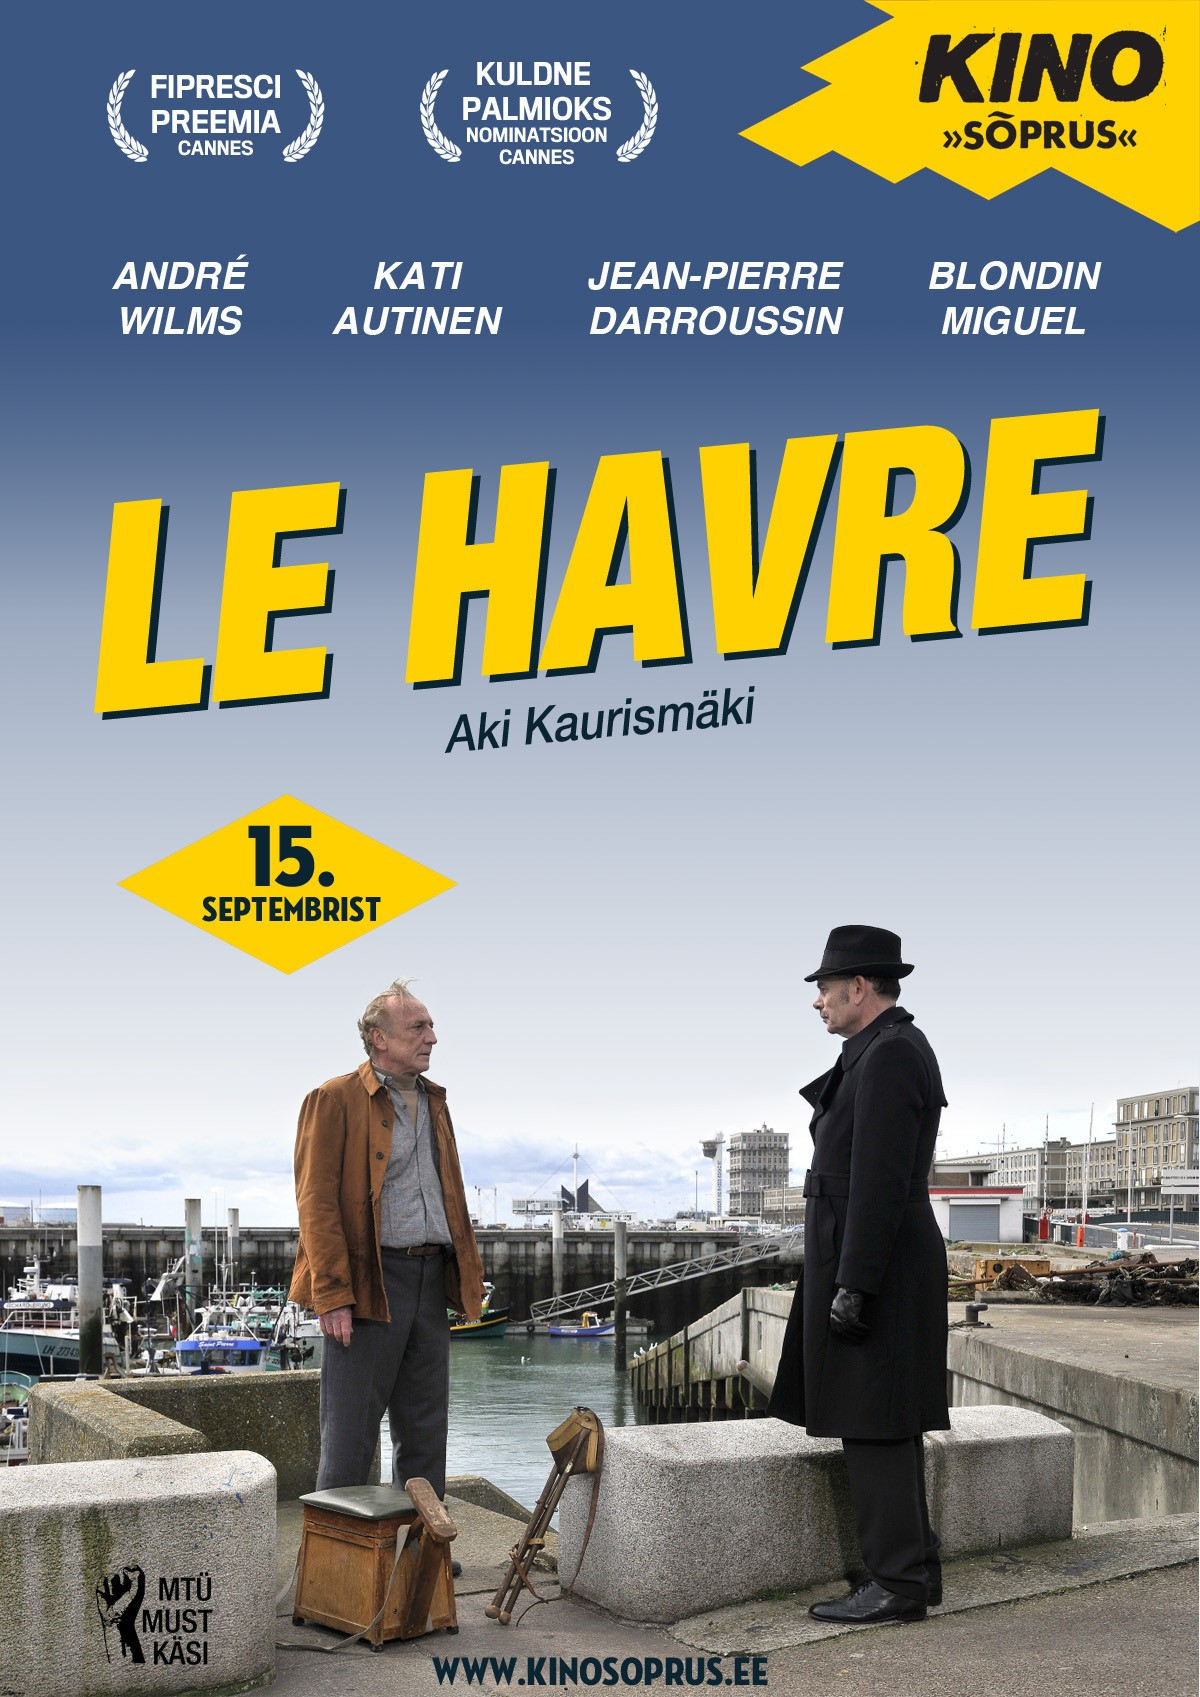 Le Havre.jpg